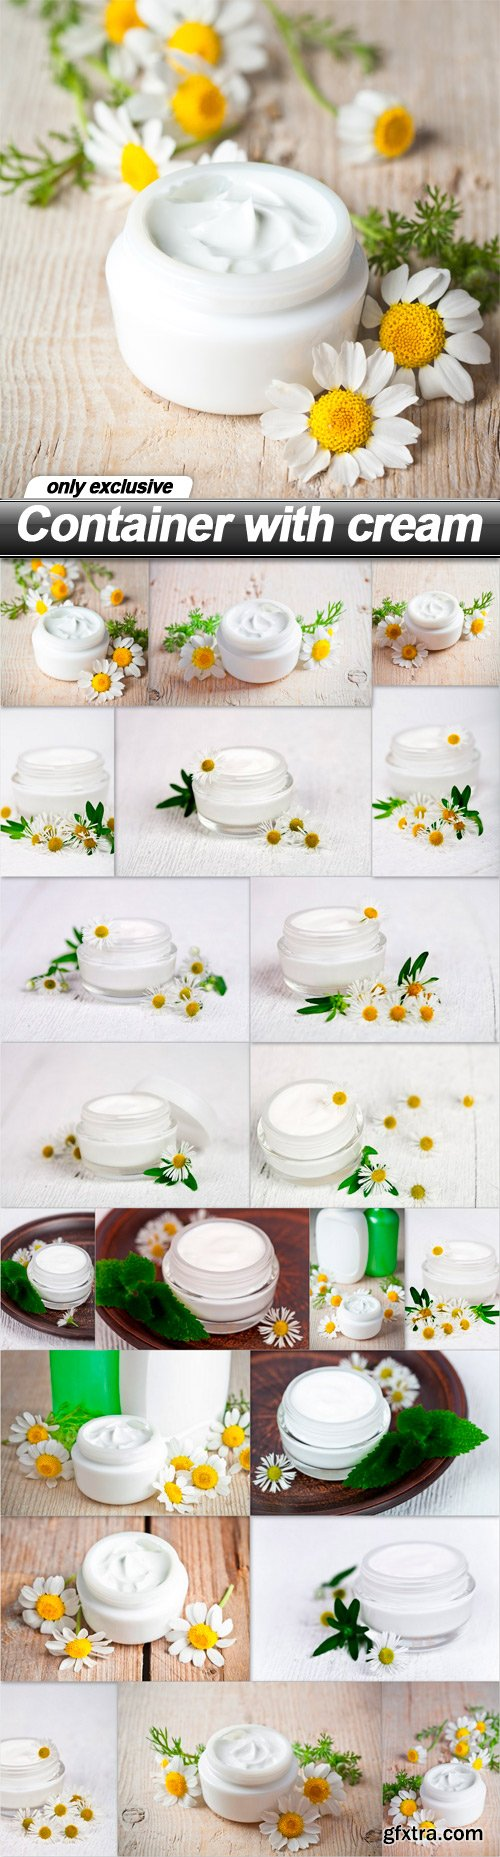 Container with cream - 21 UHQ JPEG